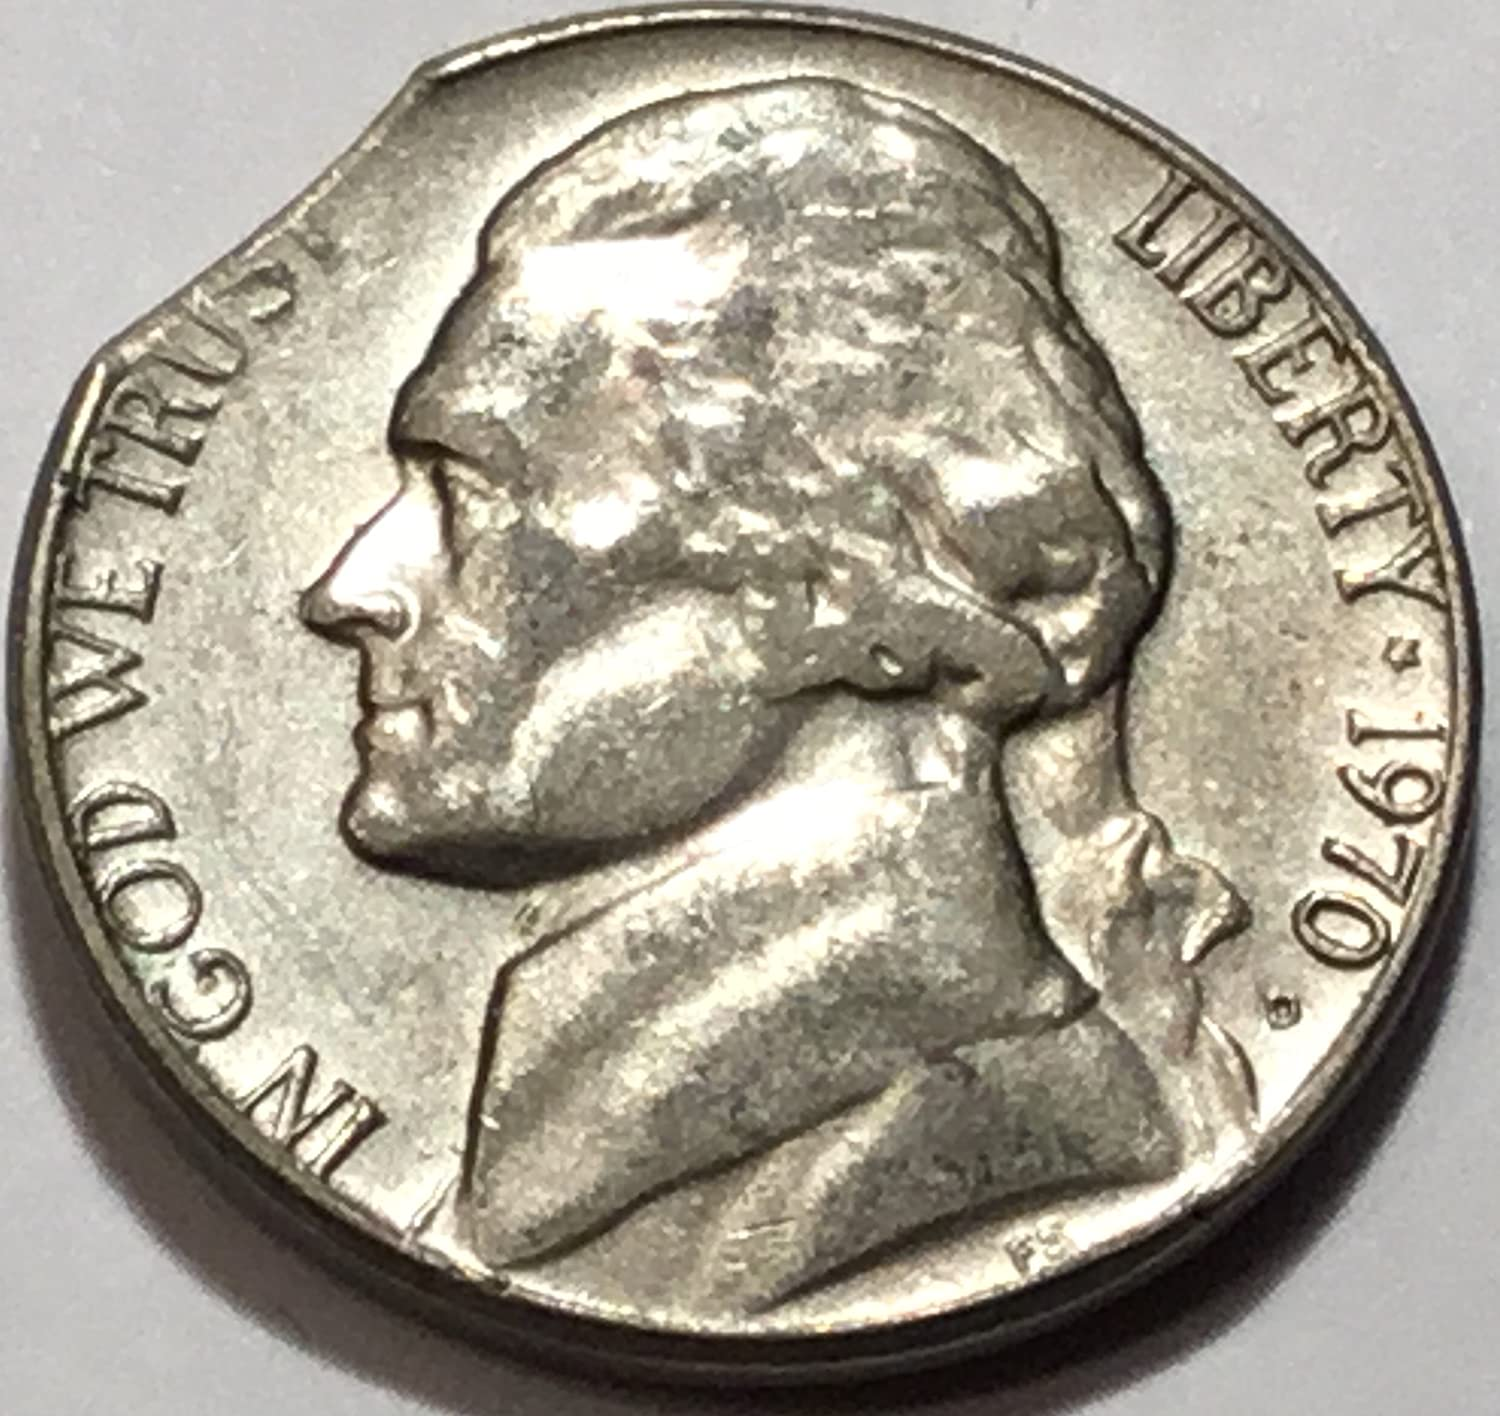 1970 D Jefferson Nickel Clipped Planchet Error Nickel About